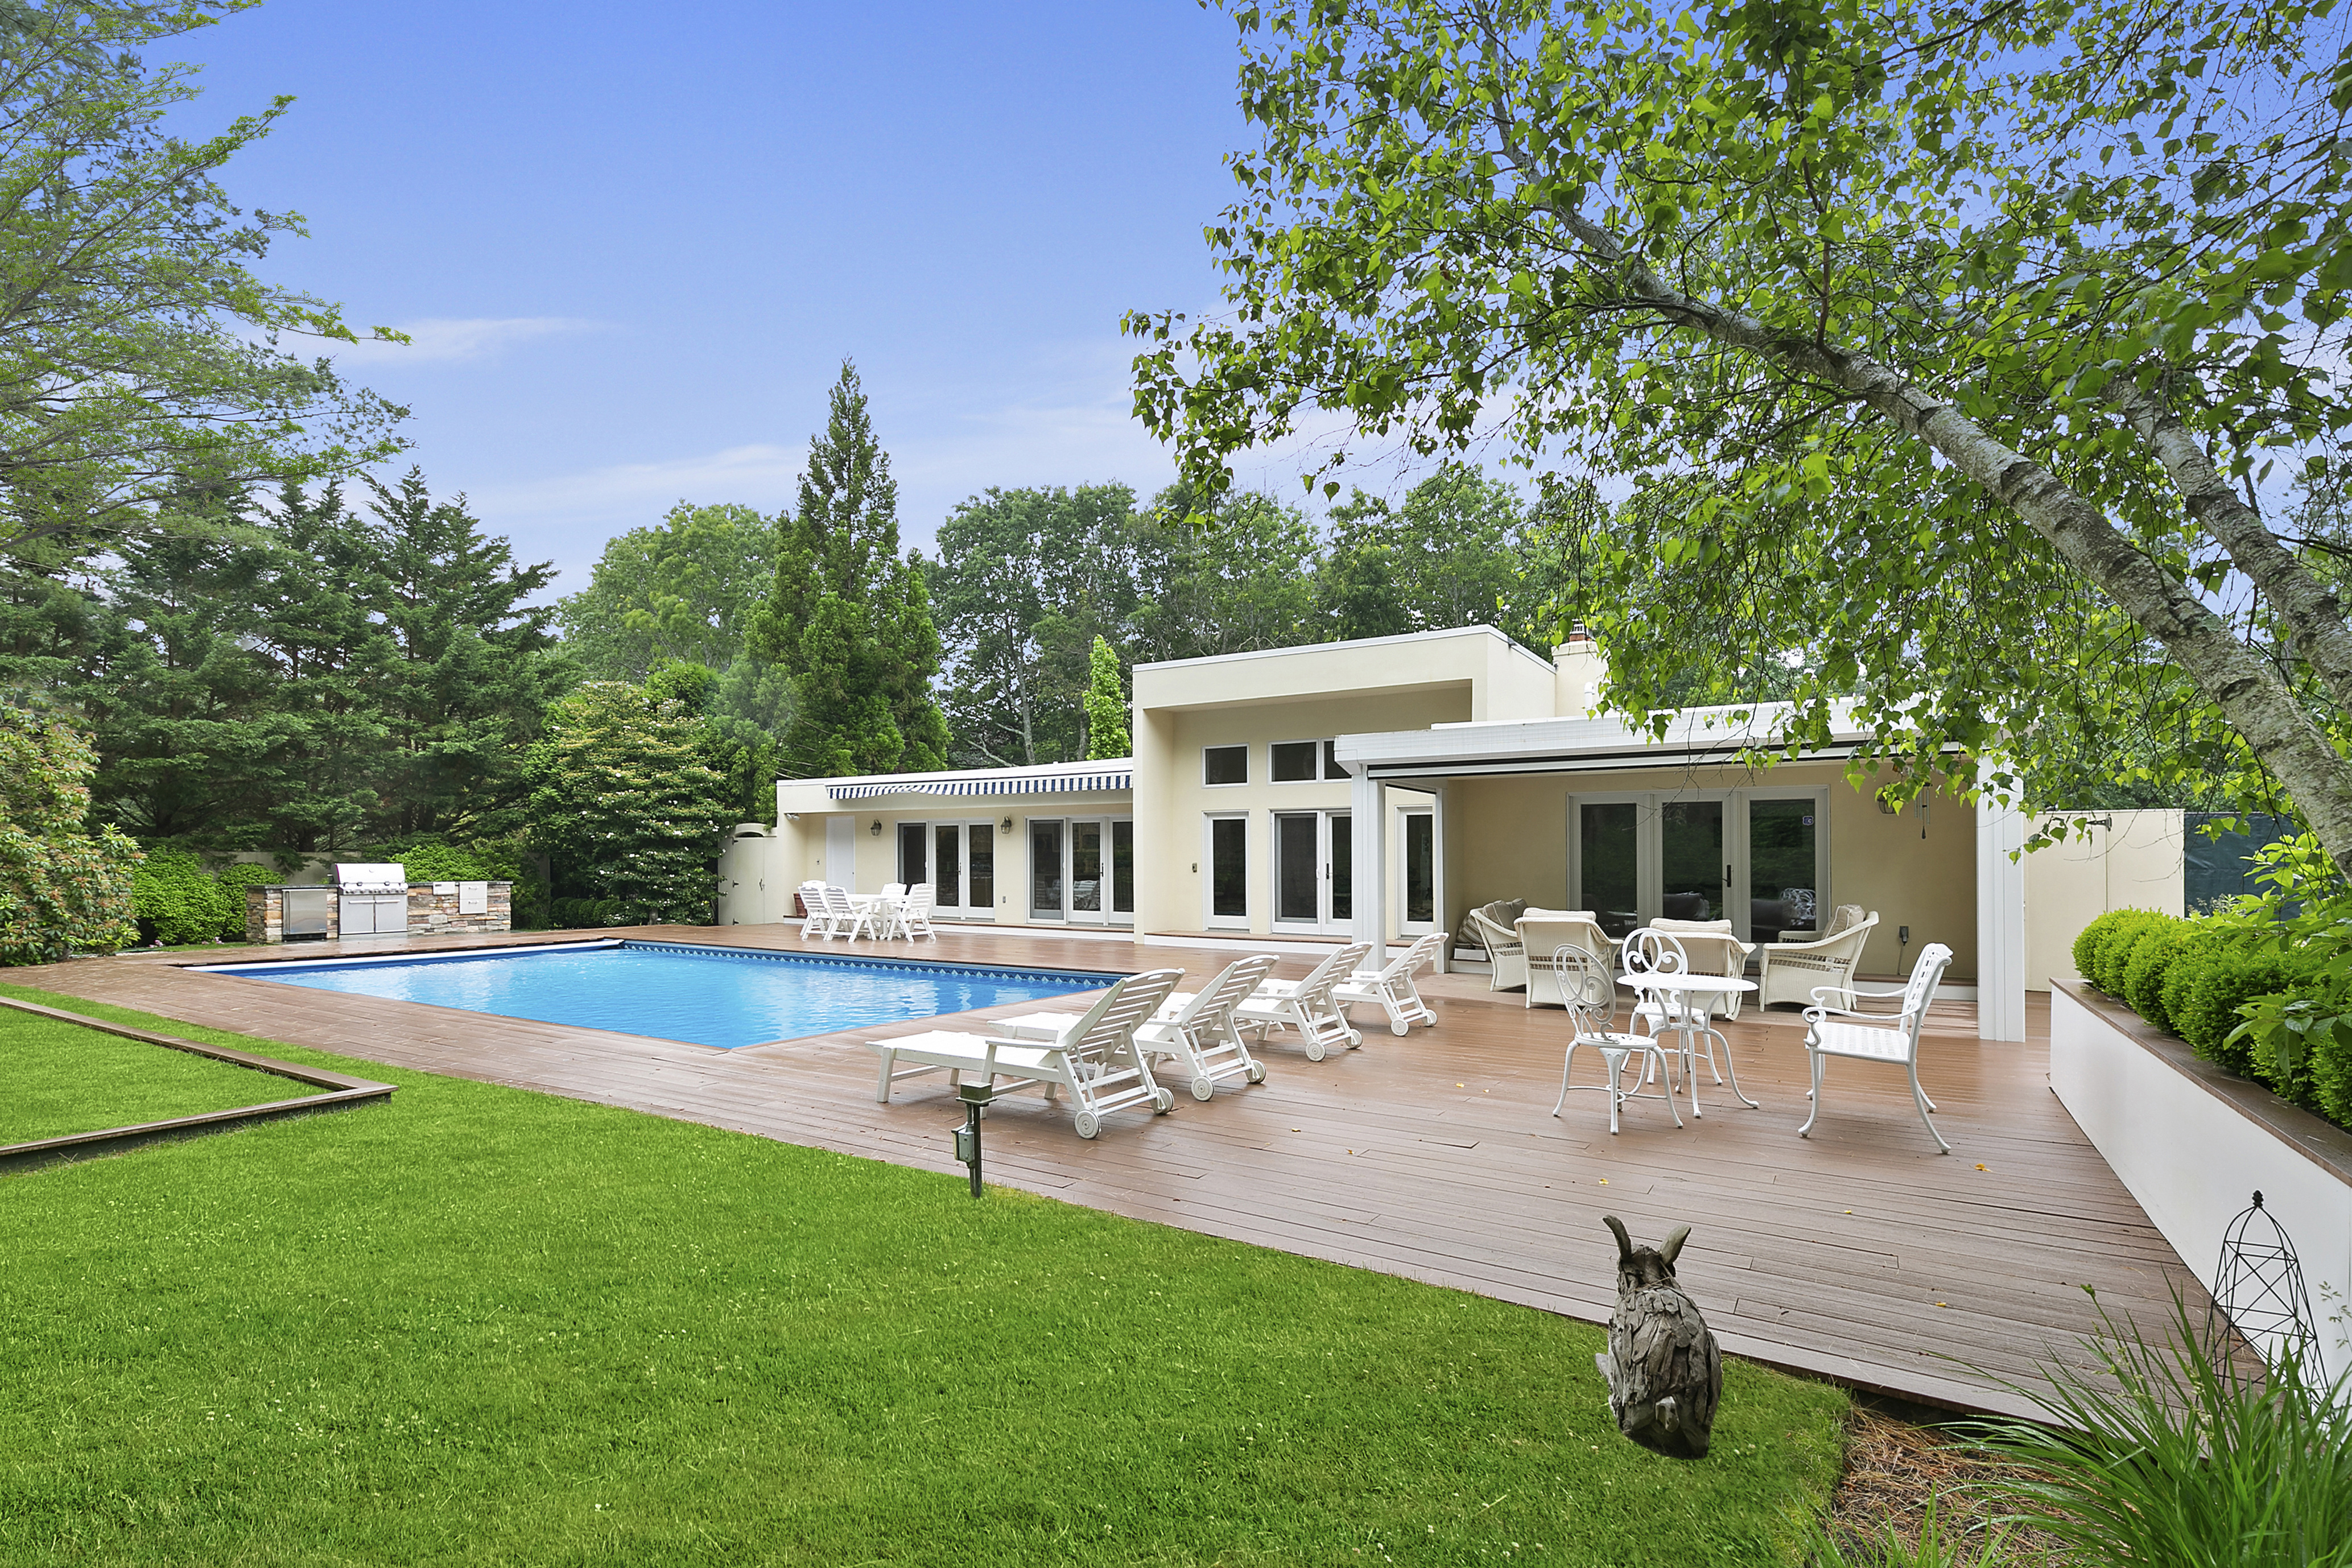 10 Whippoorwill Ct - East Quogue, New York